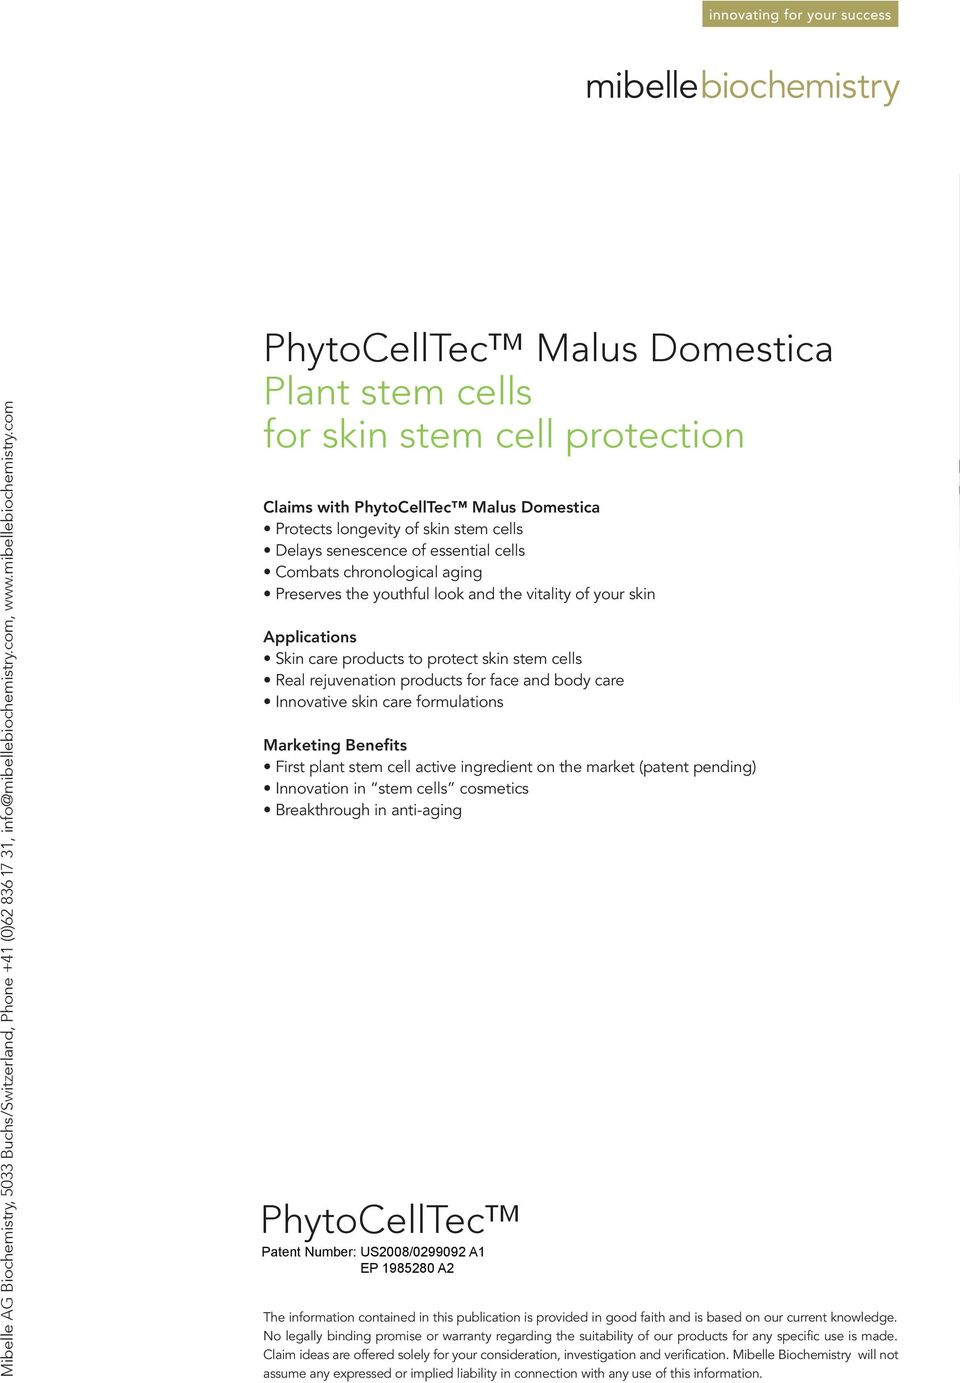 com PhytoCellTec Malus Domestica Plant stem cells for skin stem cell protection Claims with PhytoCellTec Malus Domestica Protects longevity of skin stem cells Delays senescence of essential cells